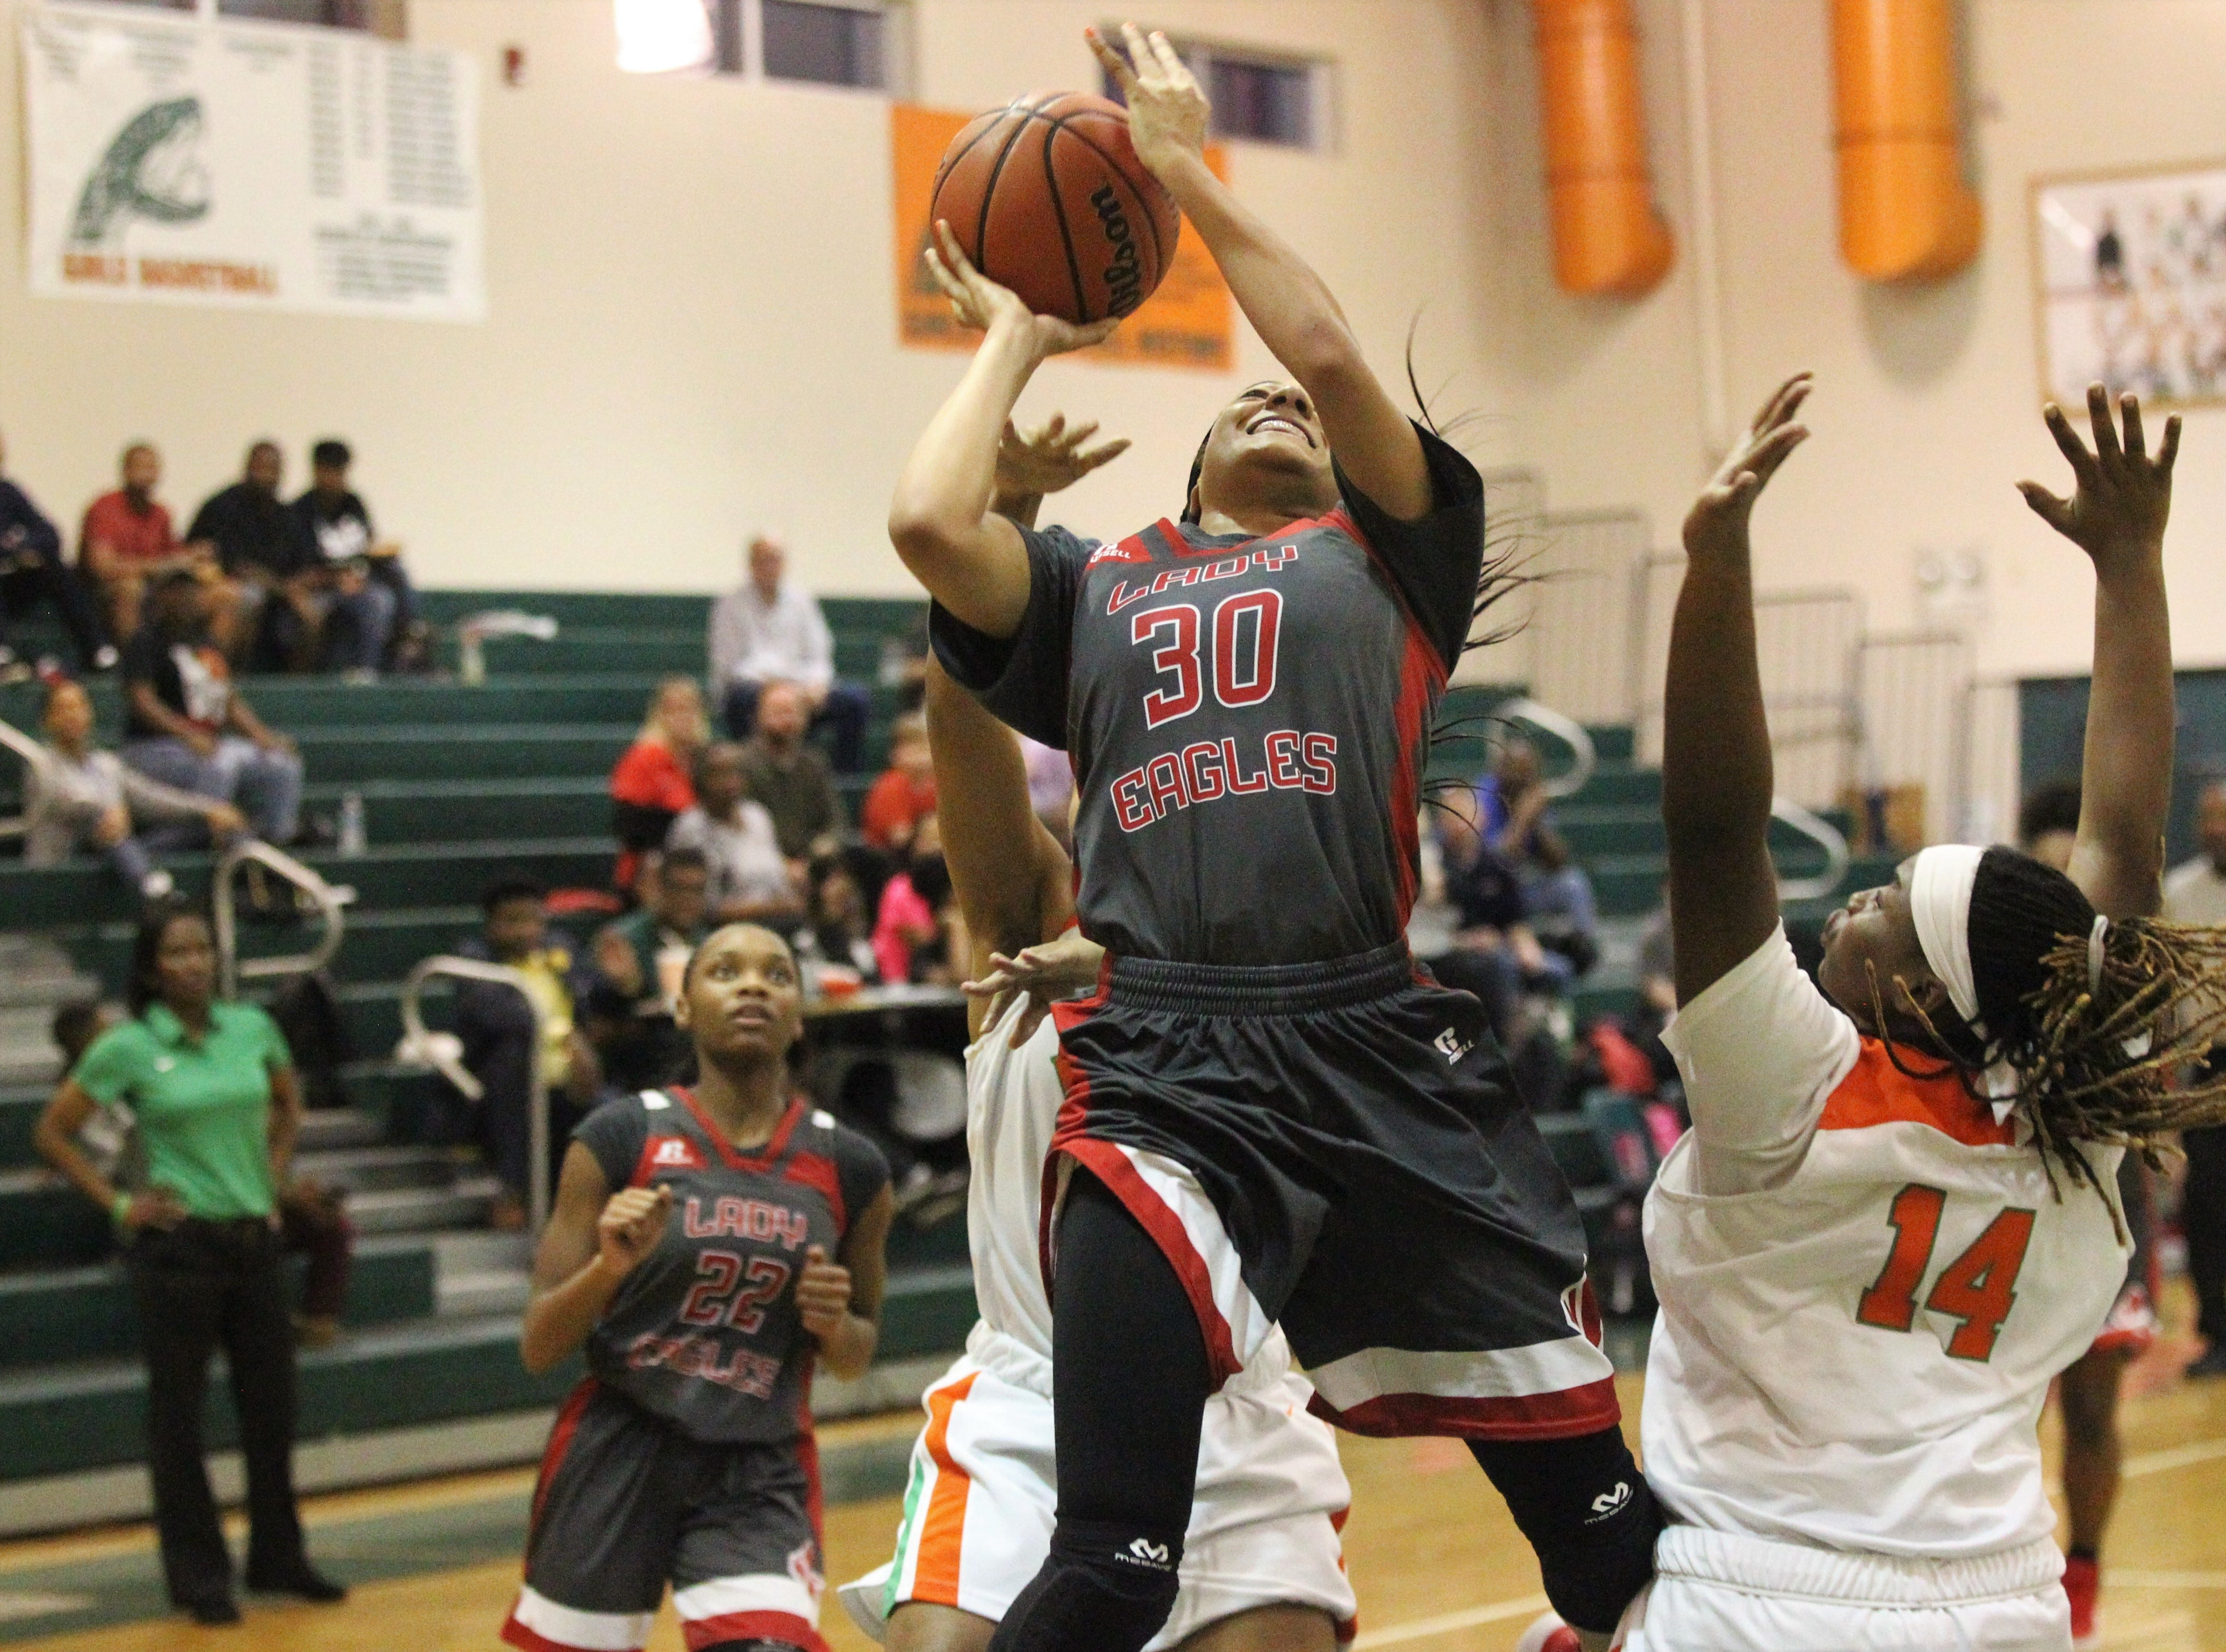 NFC senior Caylan Jones goes up for a layup in traffic as FAMU DRS' girls basketball team beat NFC 59-41 for a District 1-3A title on Jan. 7, 2019.